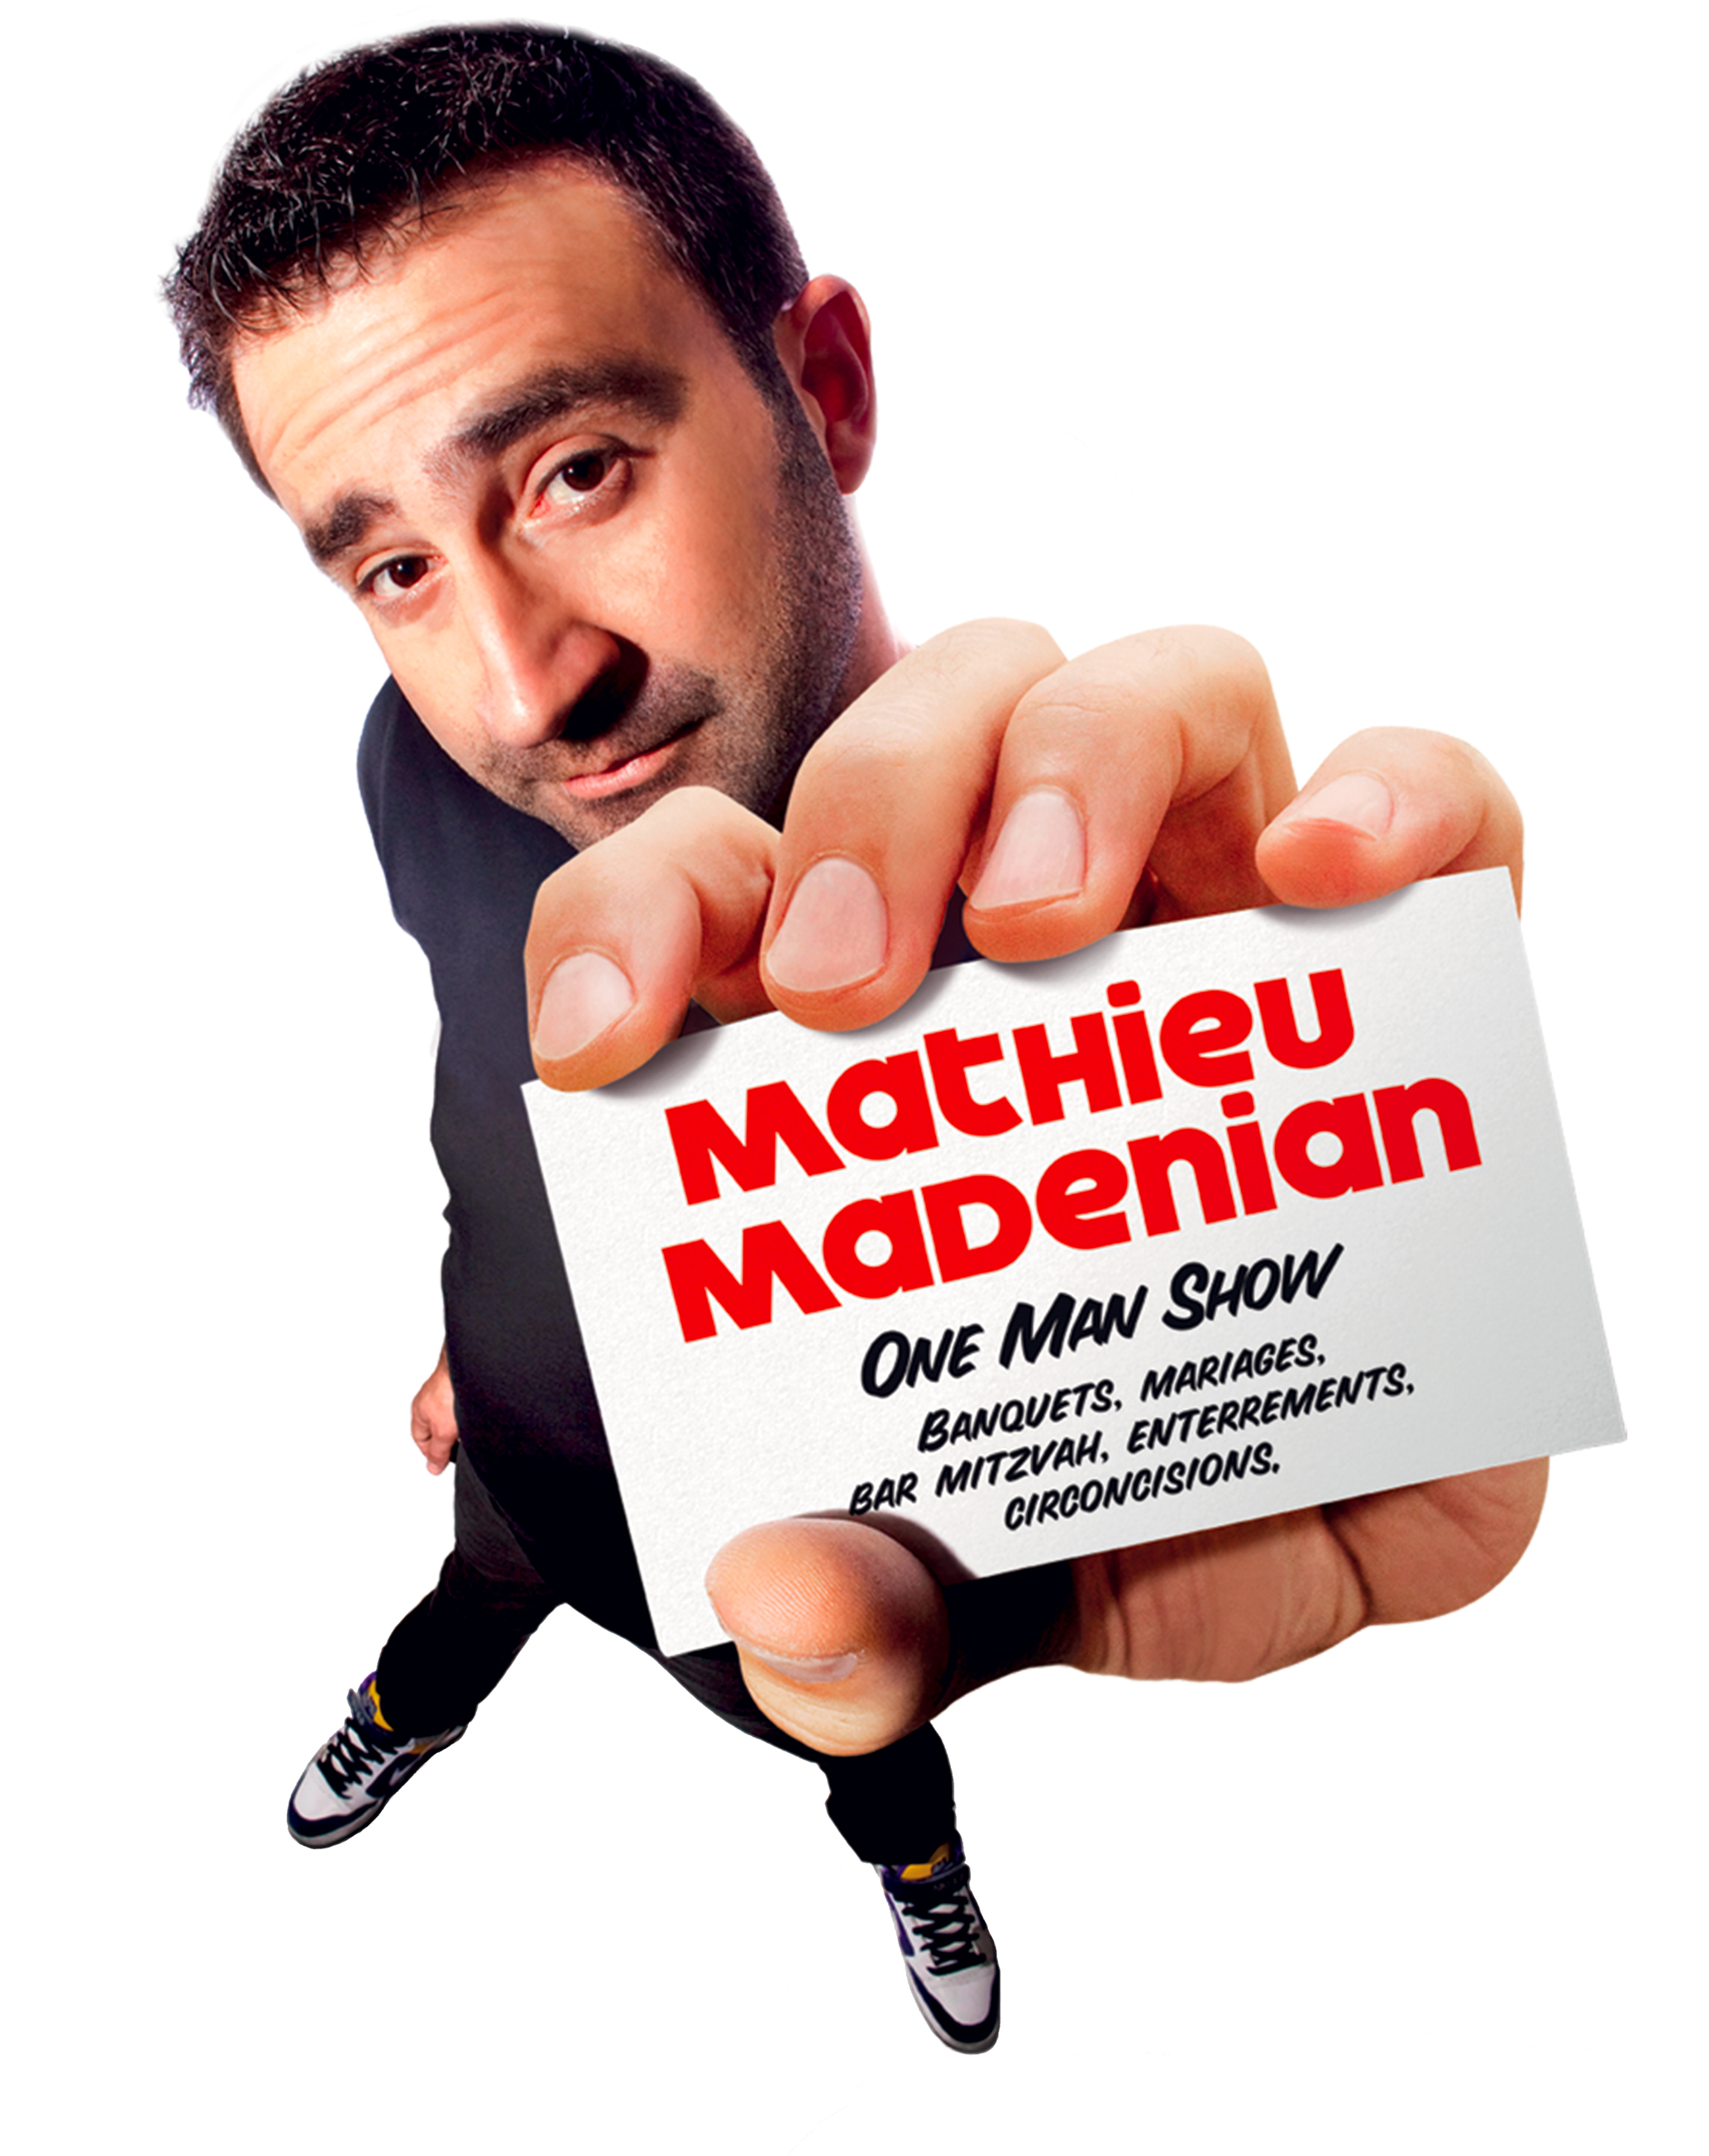 mathieu madenian one man show